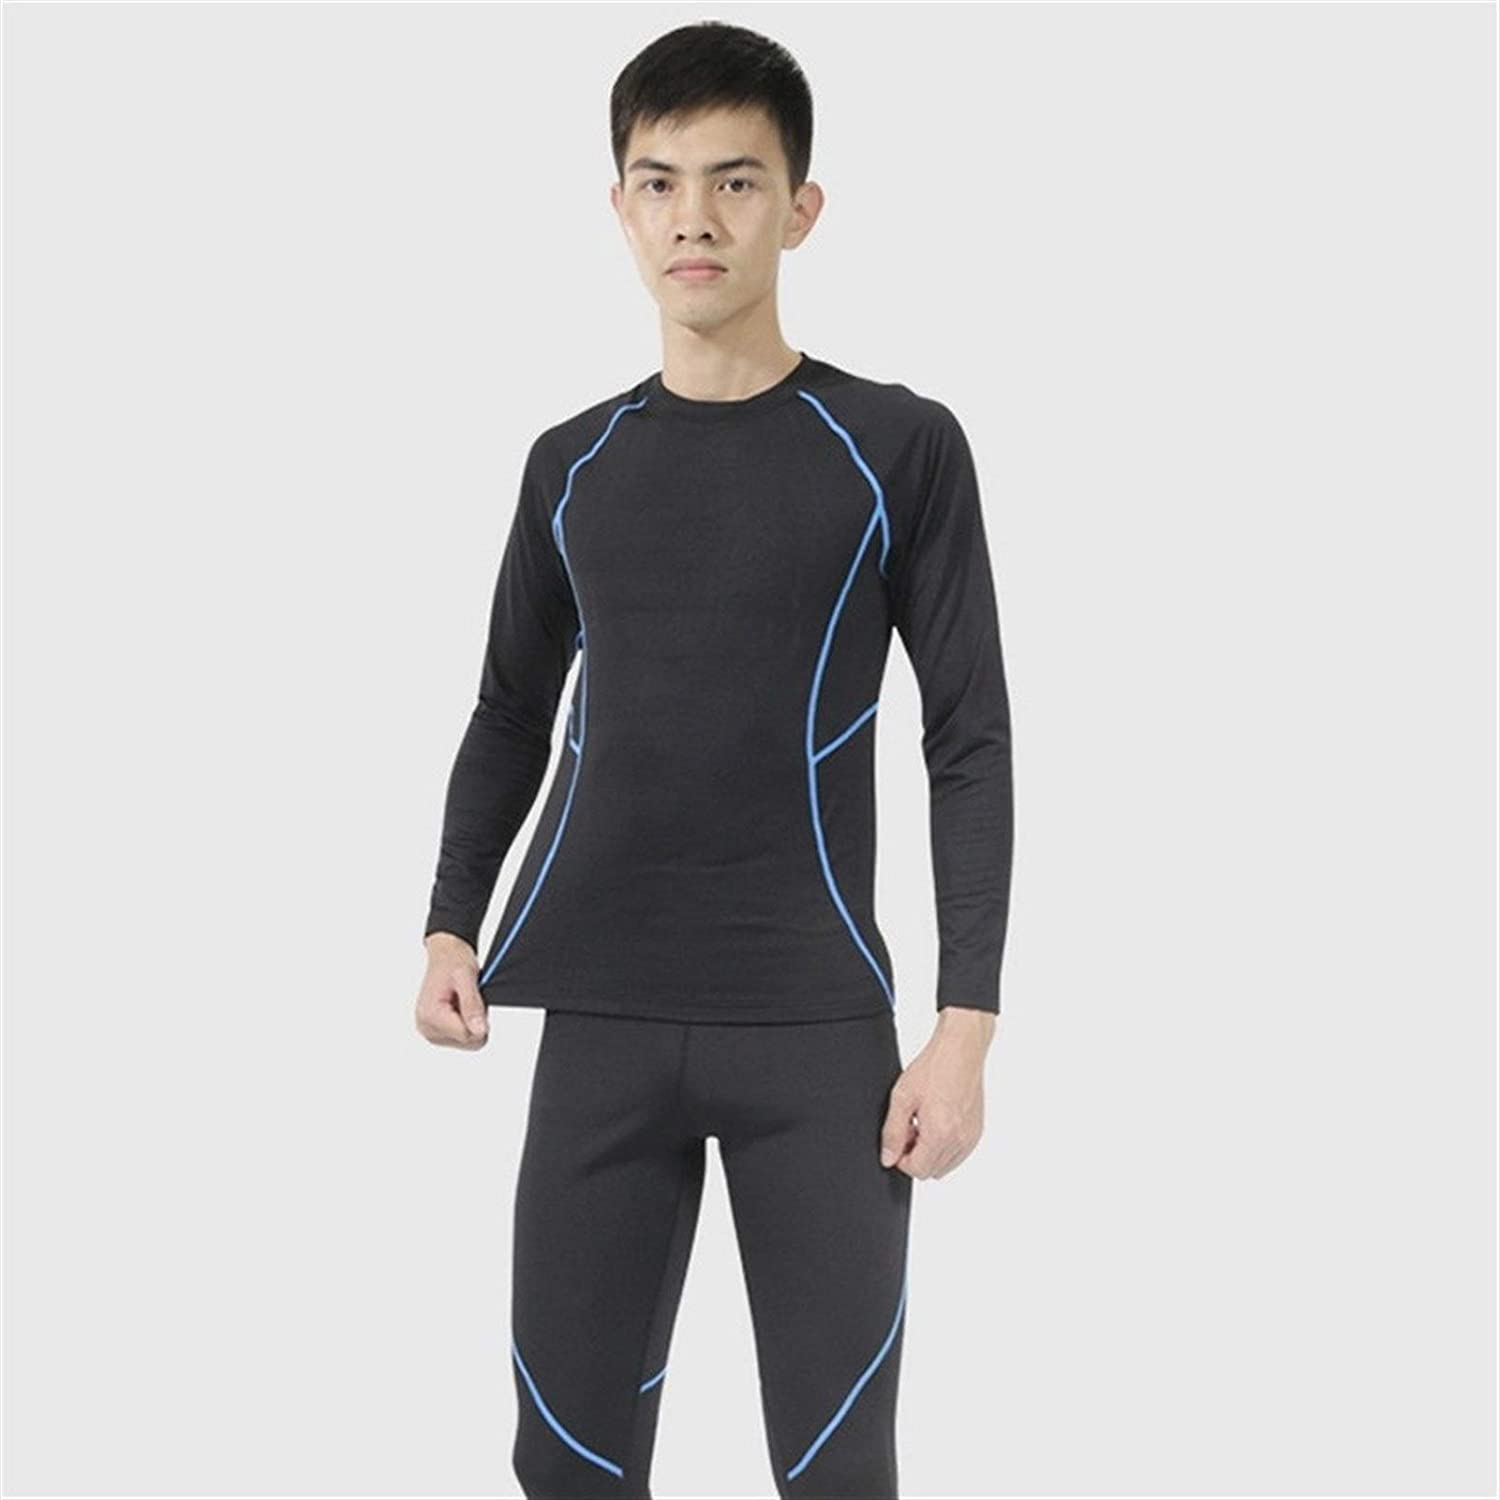 QWERBAM Winter Men Thermal Underwear Set Elastic Thick Warm Thermo Underwear Breathable Tights 3XL (Color : Blue, Size : L.)